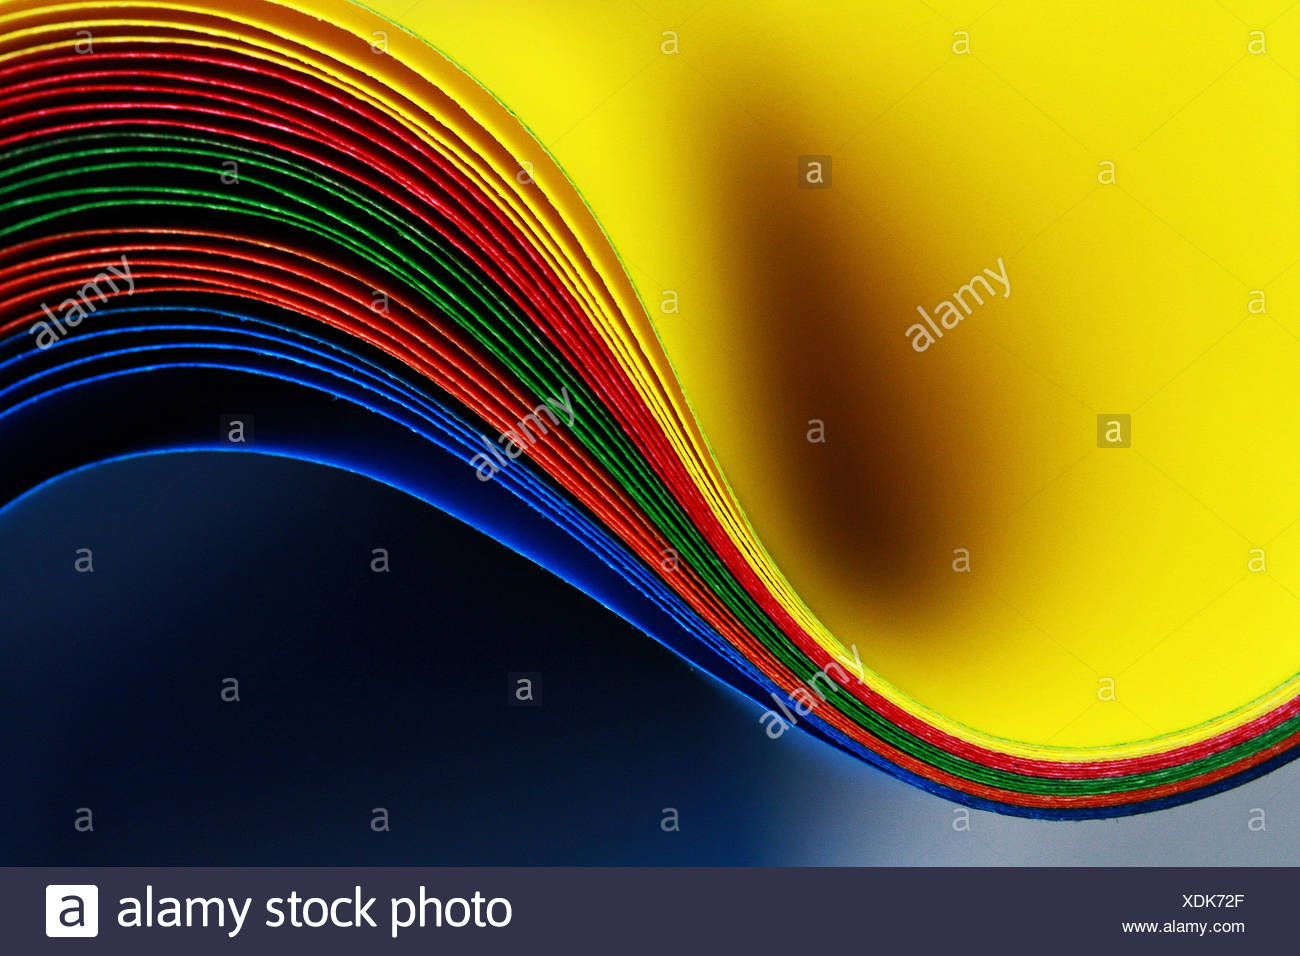 Indonesia, Central Java, Wonosobo, Close up of colorful sheets - Stock Image